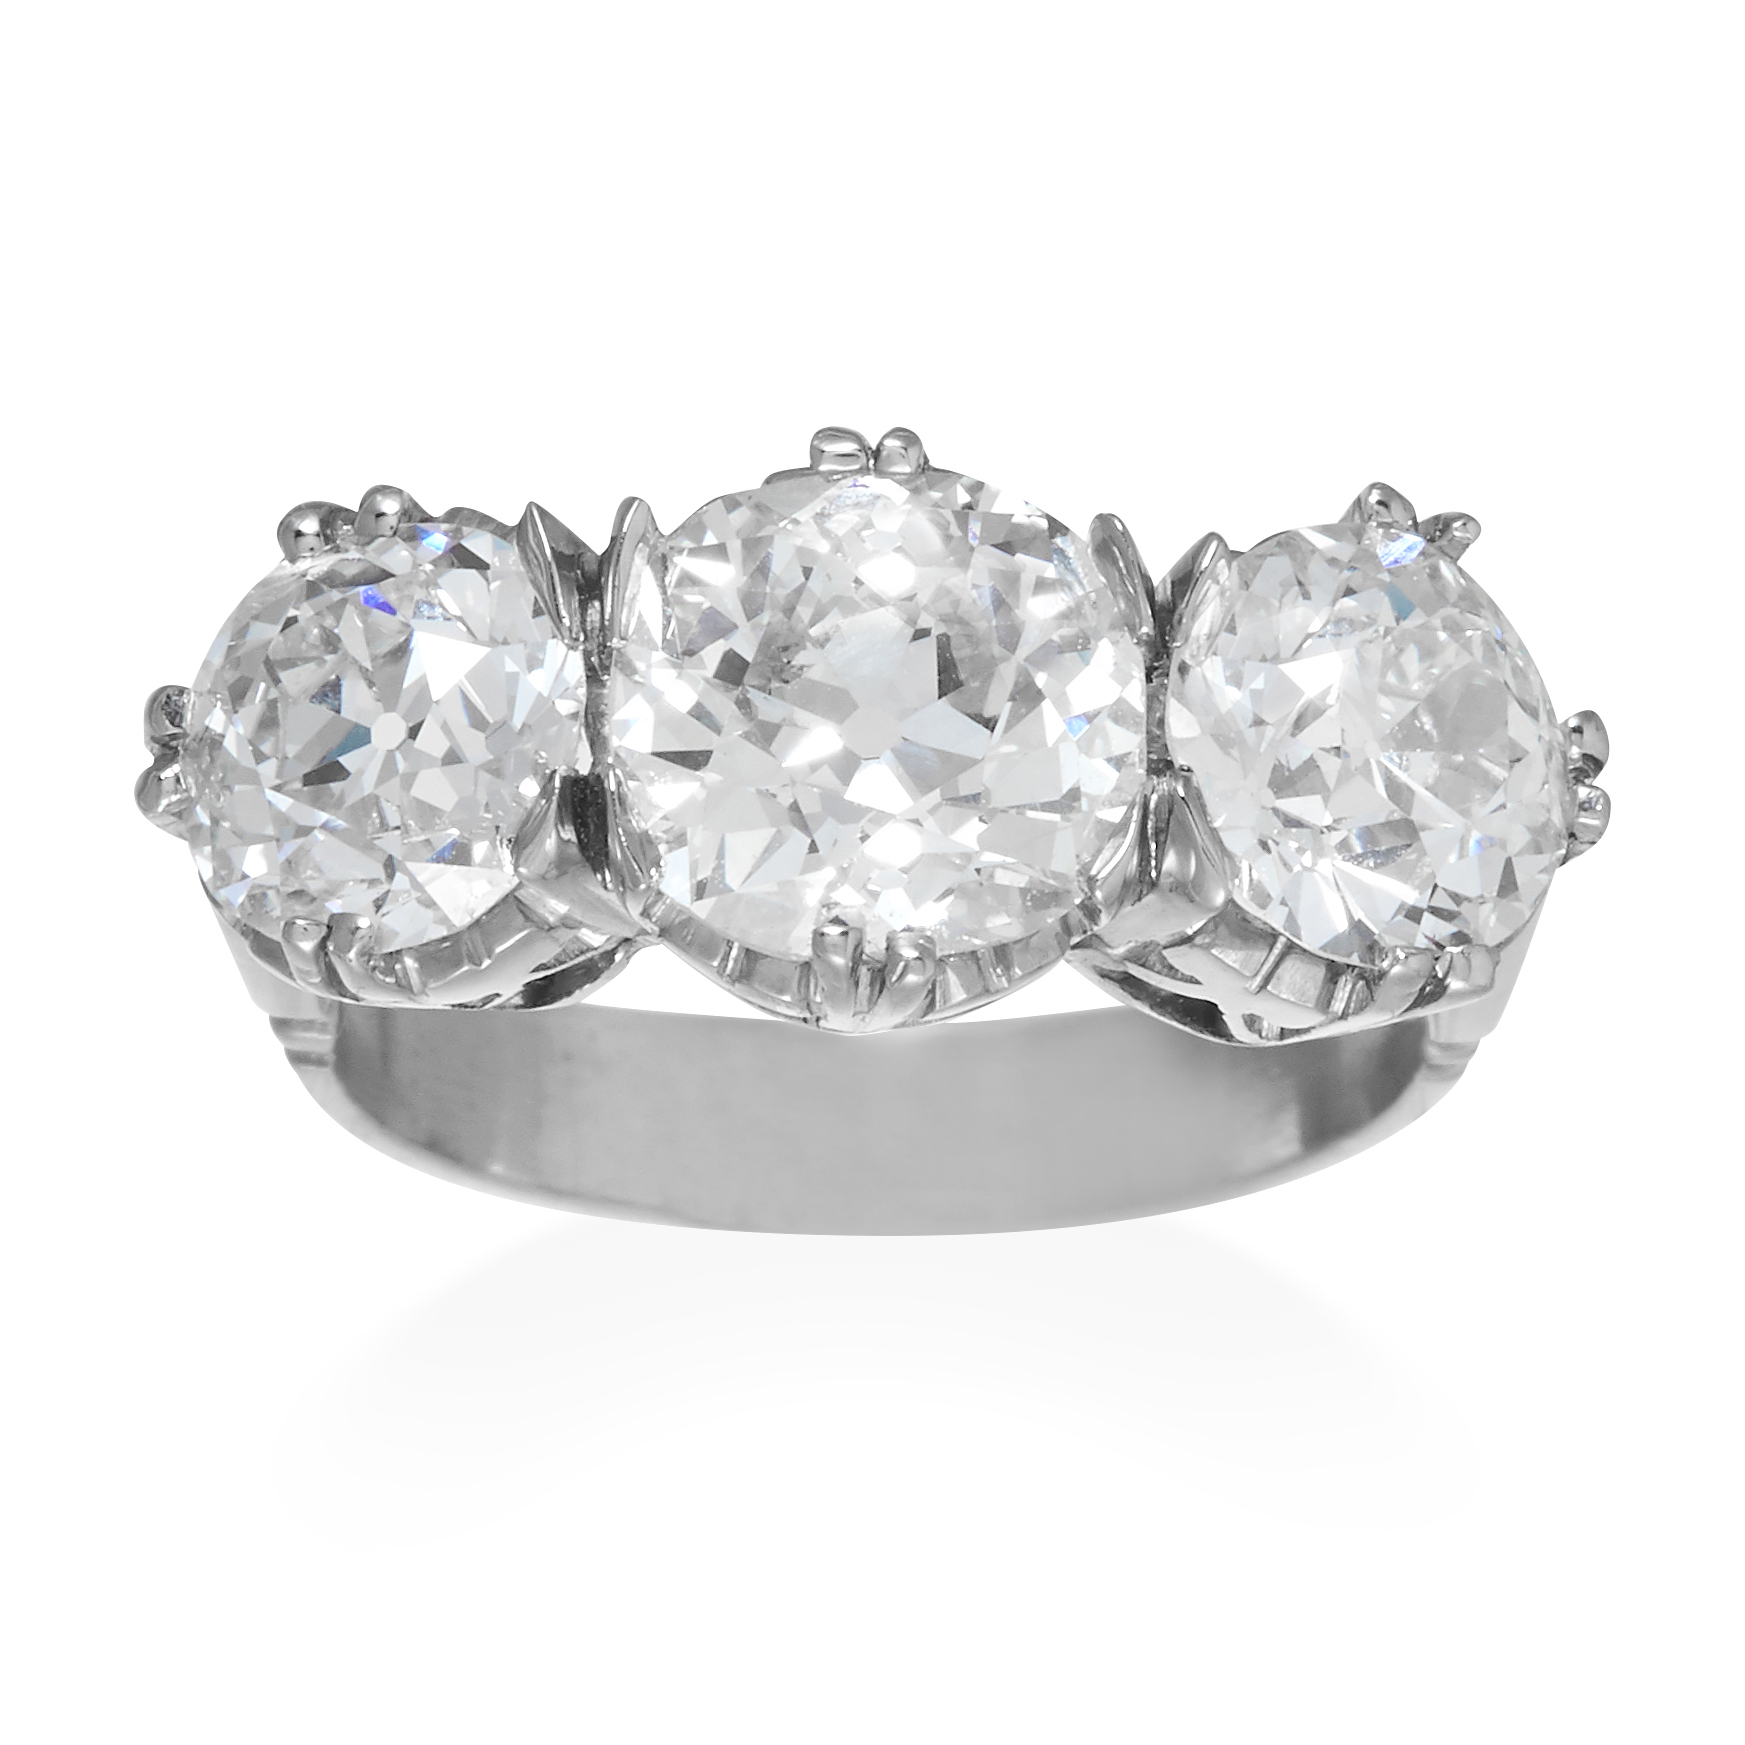 AN ANTIQUE 5.50 CARAT DIAMOND THREE STONE RING in platinum or white gold, set with three graduated